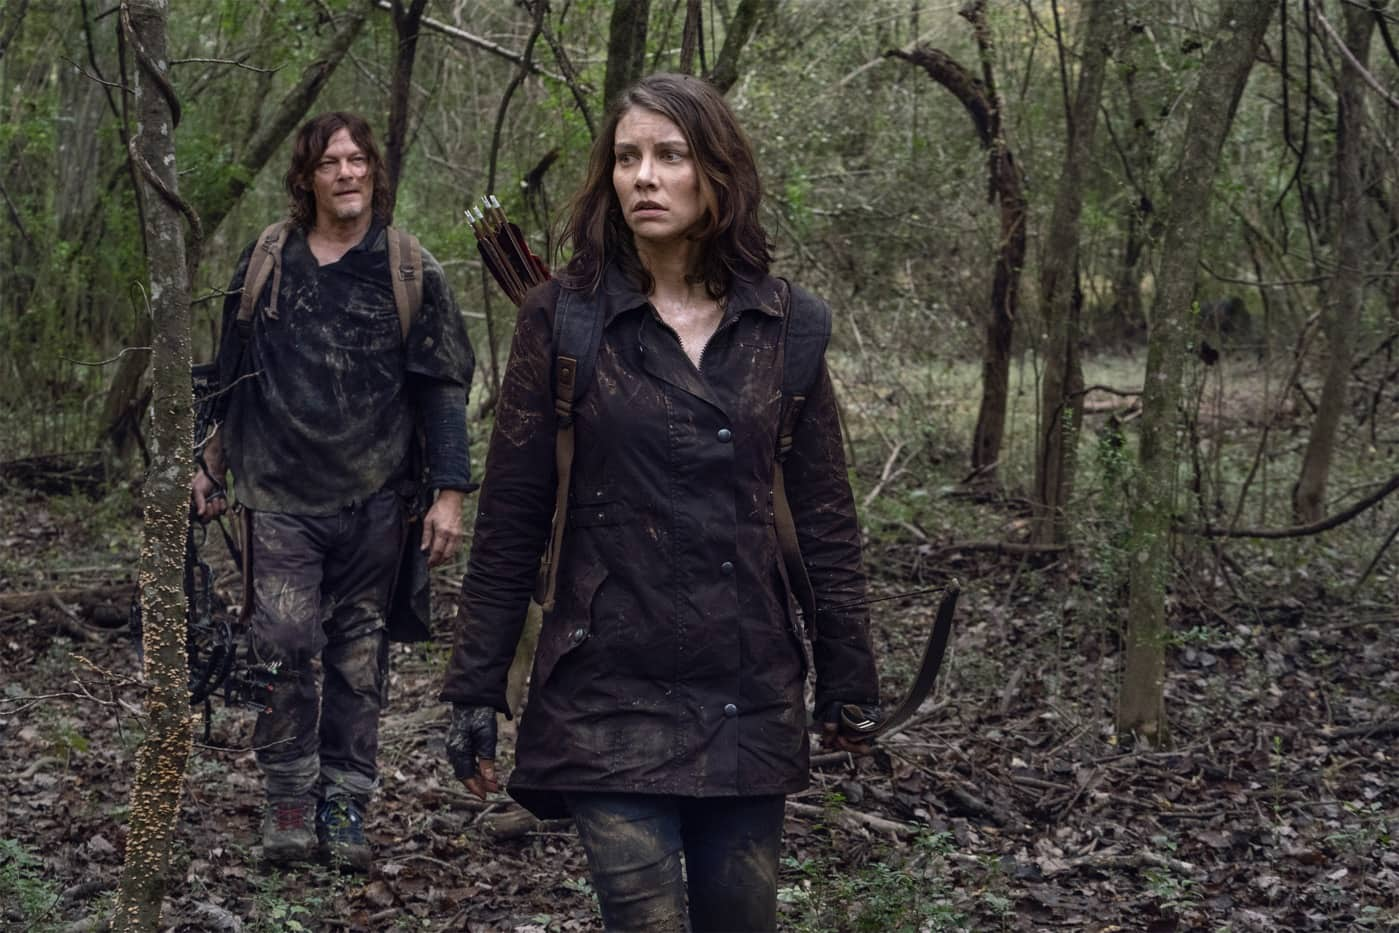 THE WALKING DEAD Season 10 Episode 17 Photos Home Sweet Home